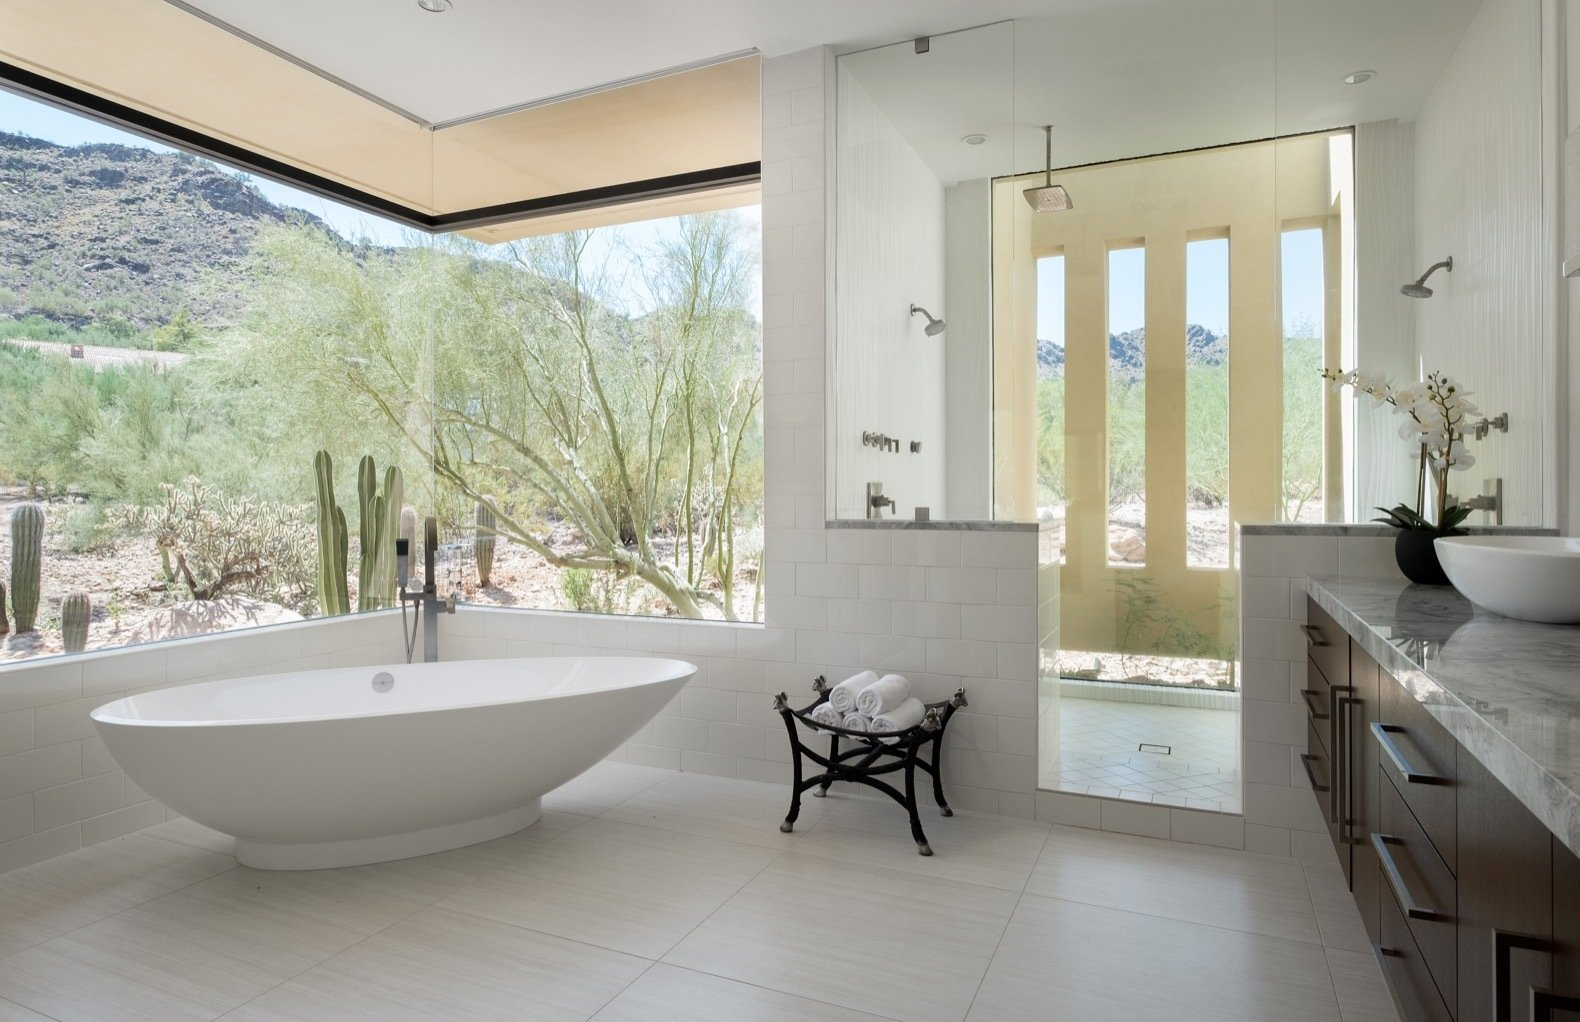 Bath, Limestone, Vessel, Recessed, Freestanding, and Open A freestanding soaking tub in the master bath is perfectly placed beneath a corner window shaded by the roof overhang.    Best Bath Limestone Recessed Photos from Rammed Earth Walls Tie This Eco-Friendly Home to the Desert